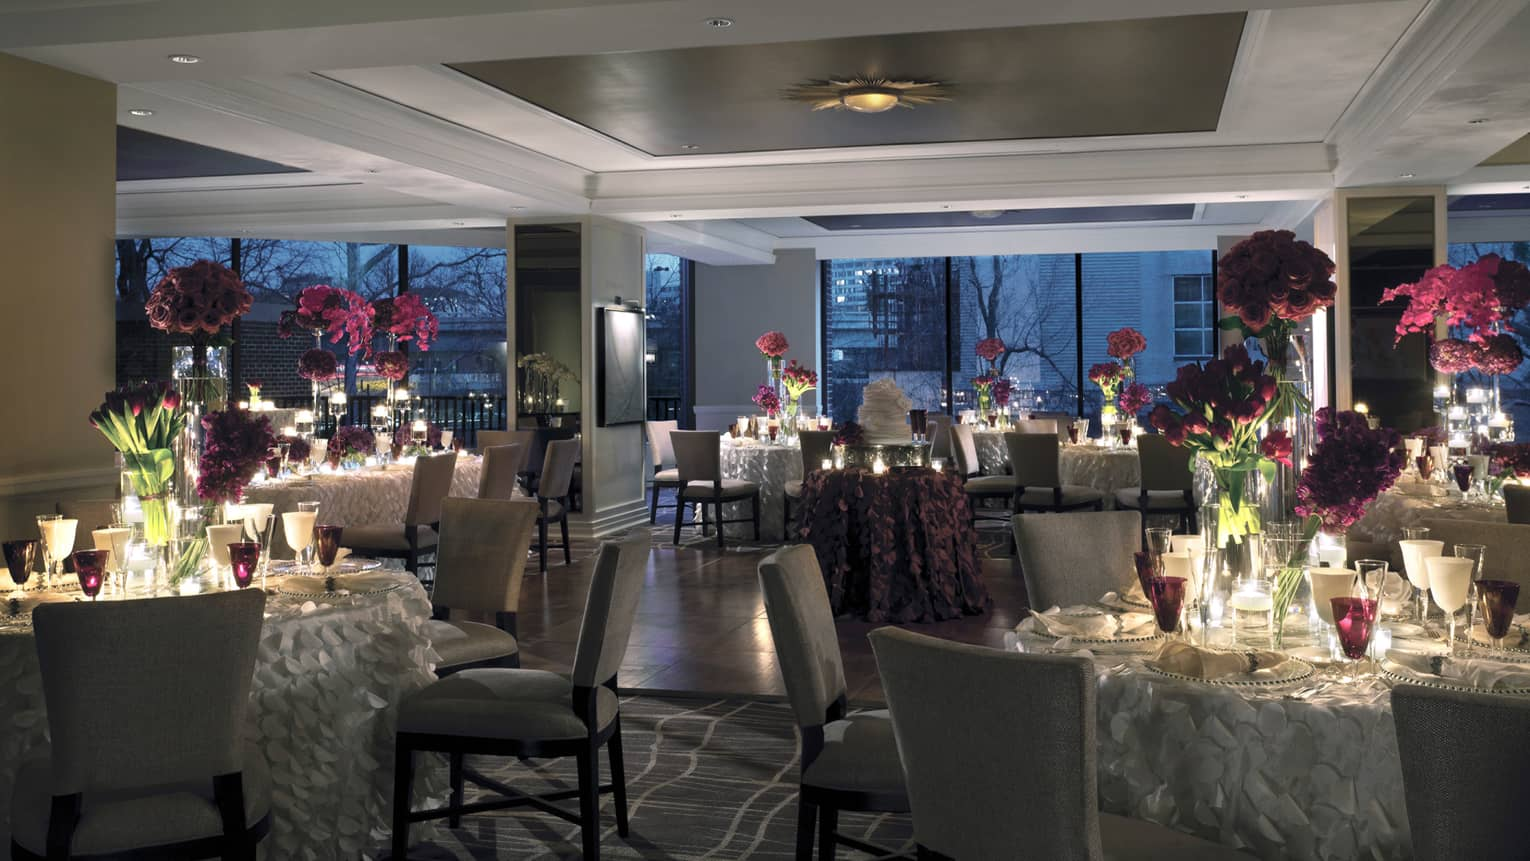 Seasons dining room wedding banquet setting at night with candle-lit tables, fringed tablecloths, floral centrepieces